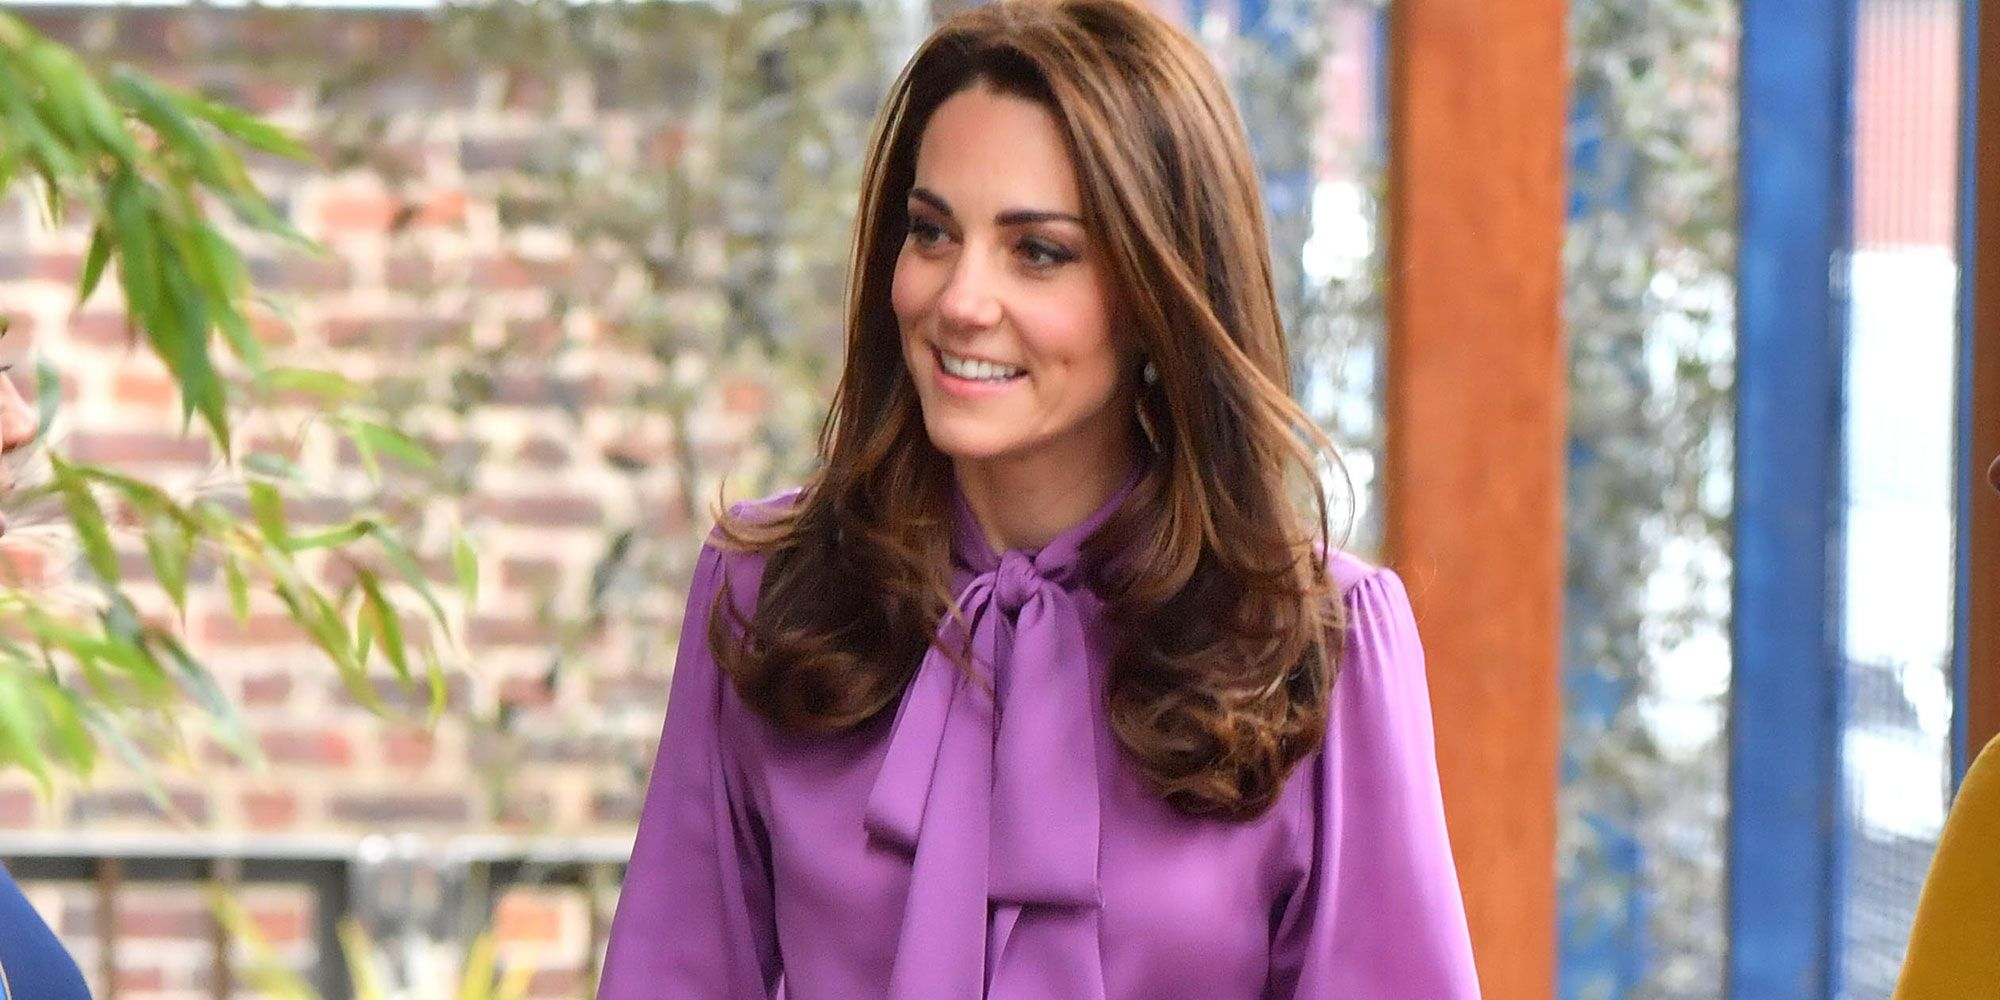 Kate Middleton visits children's centre in London